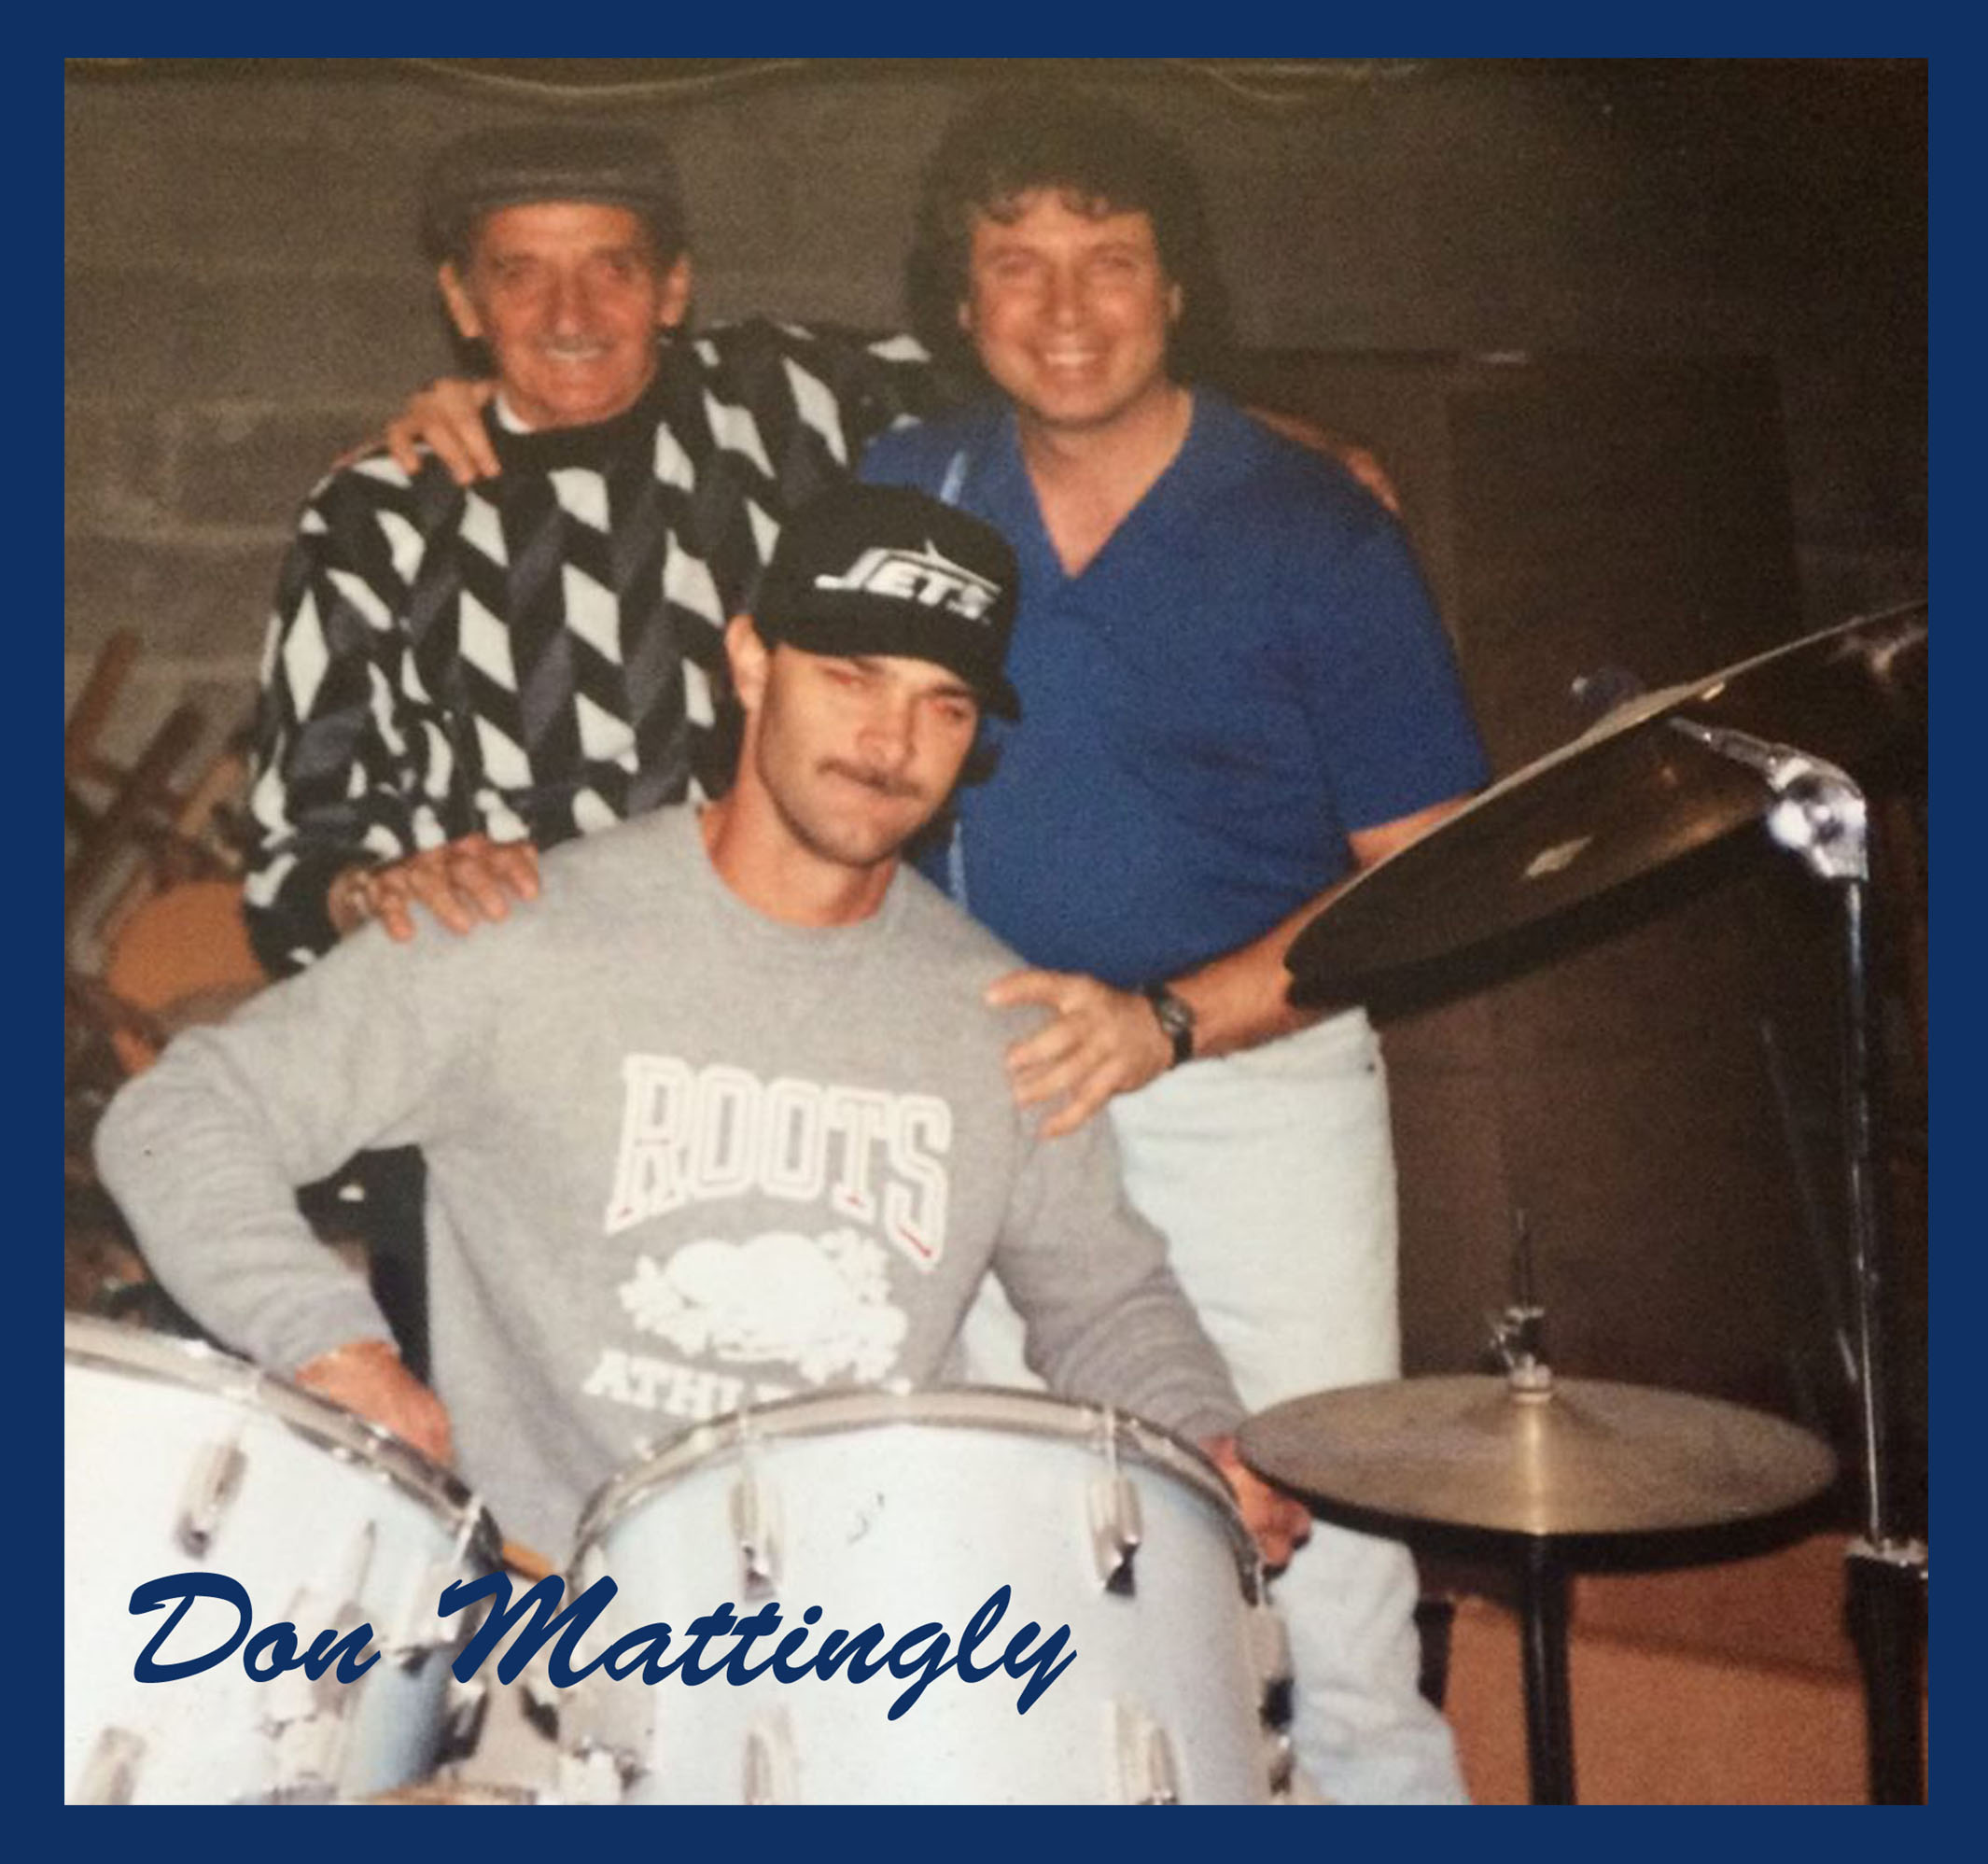 Don-Mattingly-Drums.jpg